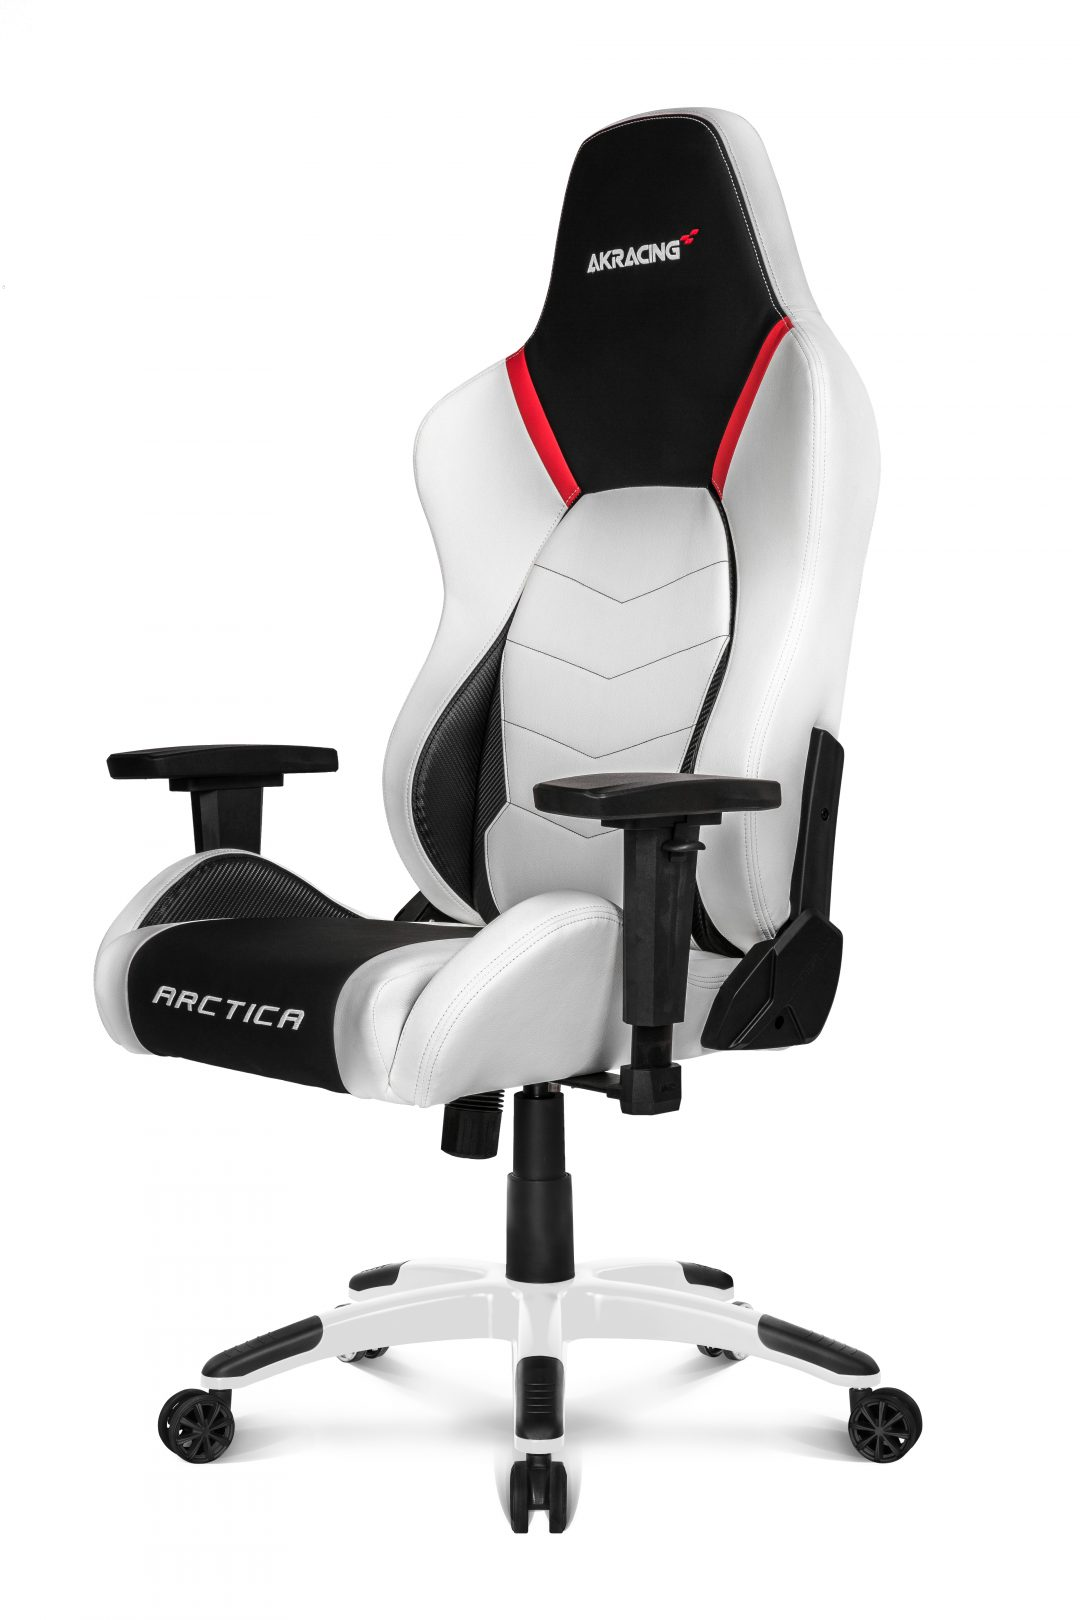 Gamer Sessel Schweiz Gaming Onlineshop Computersessel Hardware Gameran